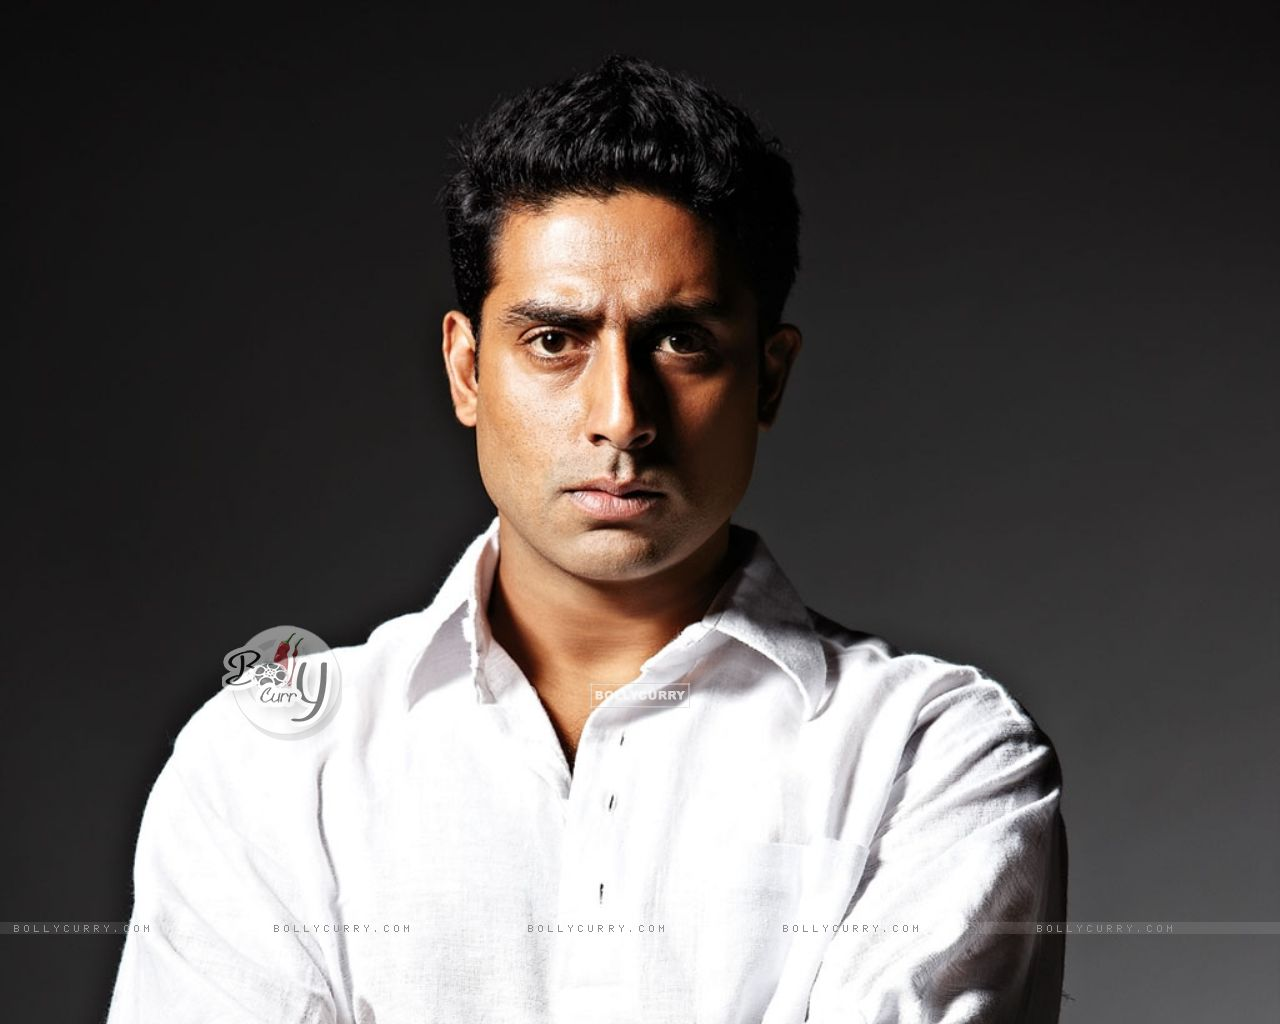 Abhishek Bachchan in the movie Khelein Hum Jee Jaan Sey (105933) size:1280x1024